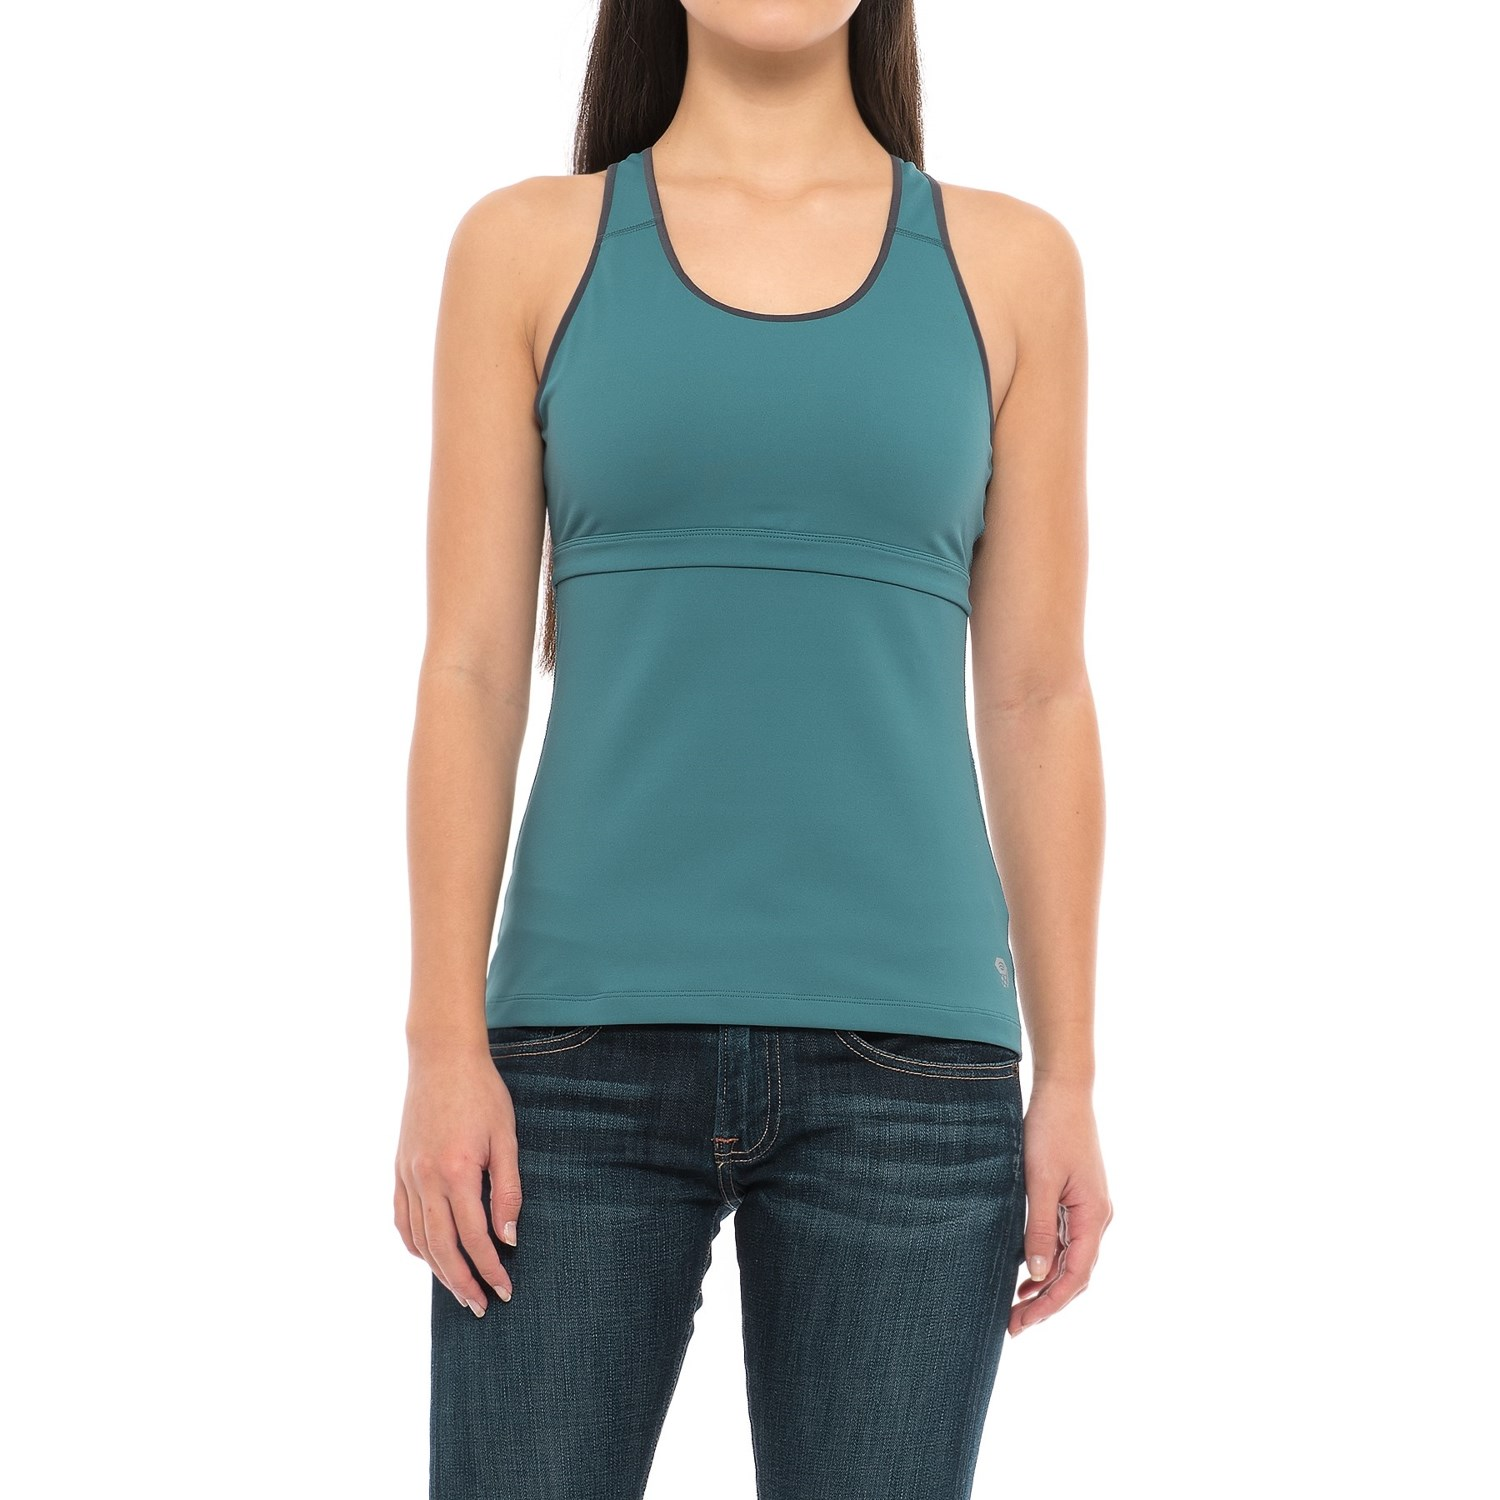 Document Moved |With Shelf Bra Tank Top